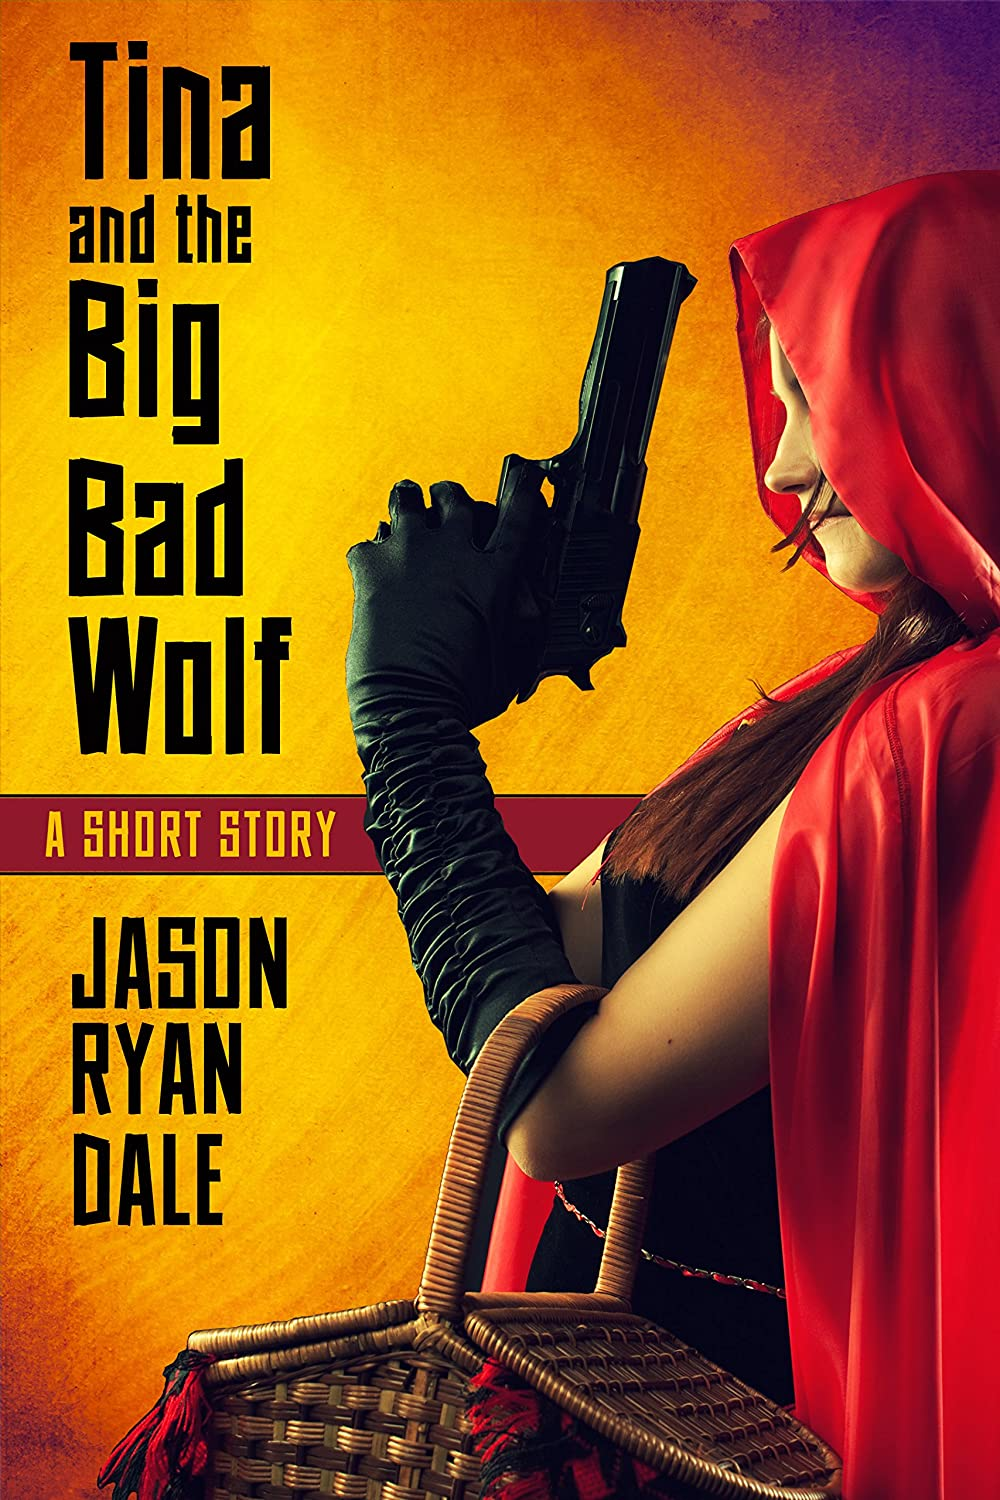 Tina and the Big Bad Wolf - A Short Story by Jason Ryan Dale